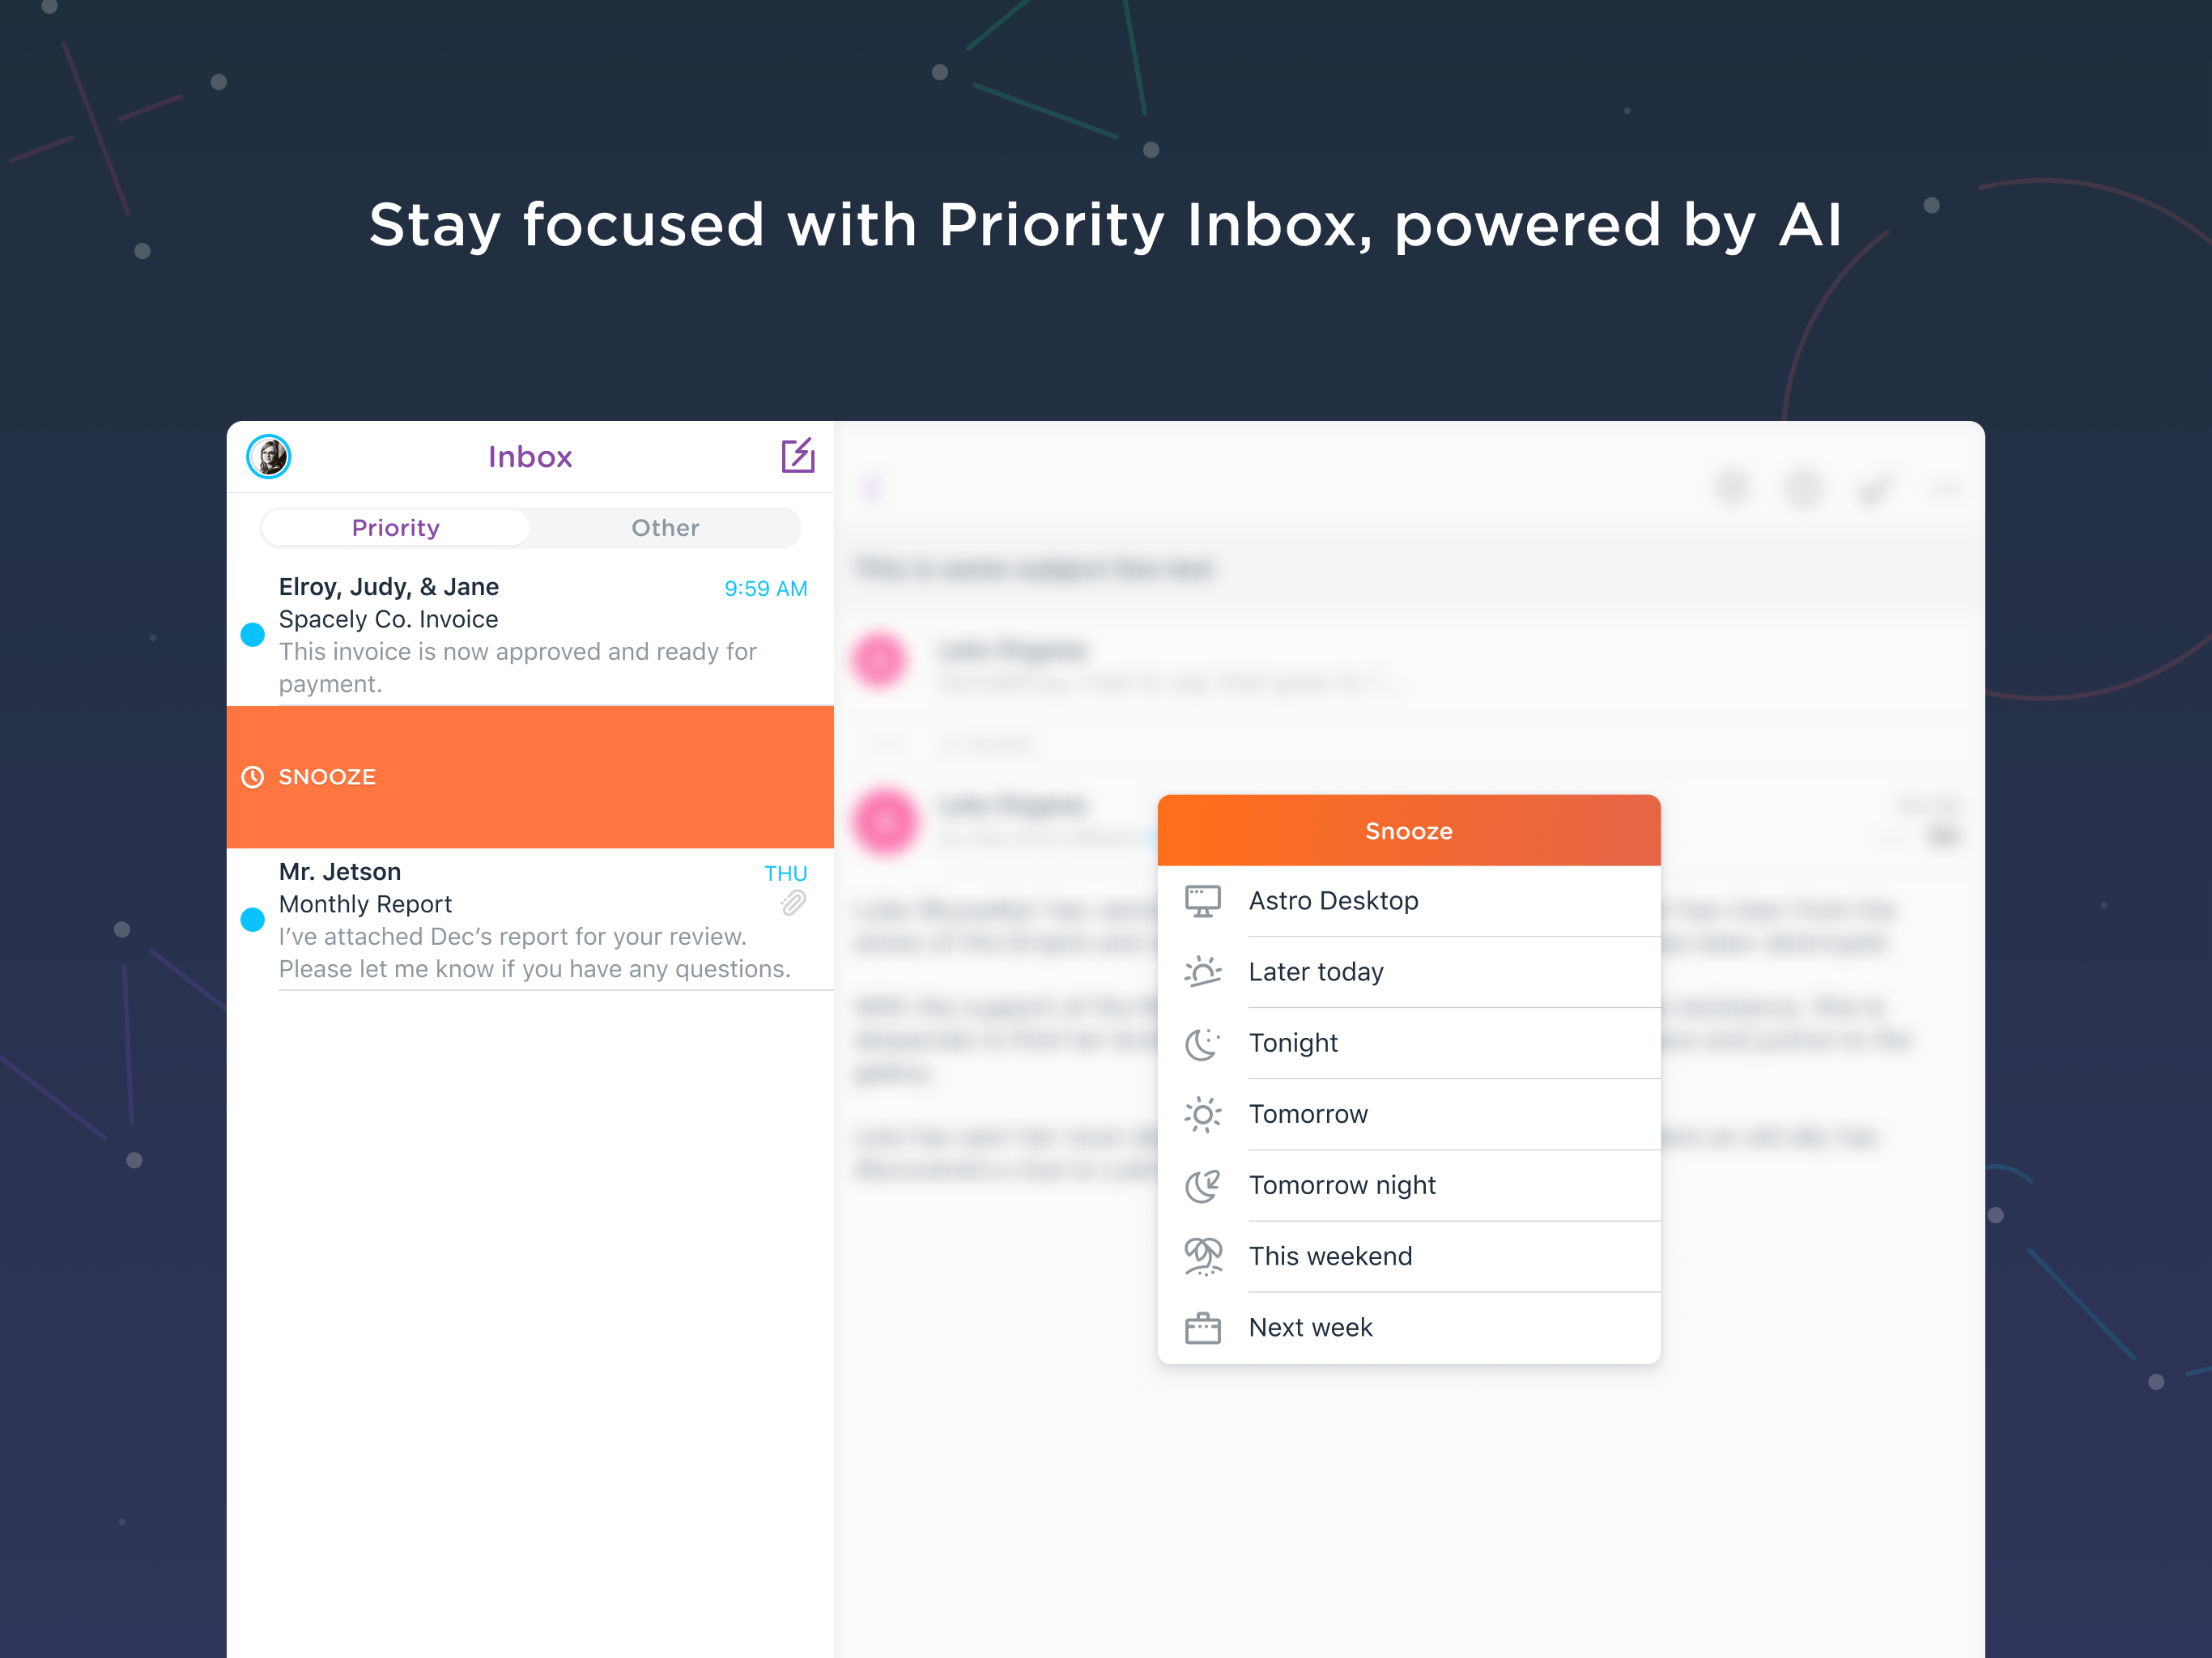 Astro Demo - Stay focused with Priority Inbox